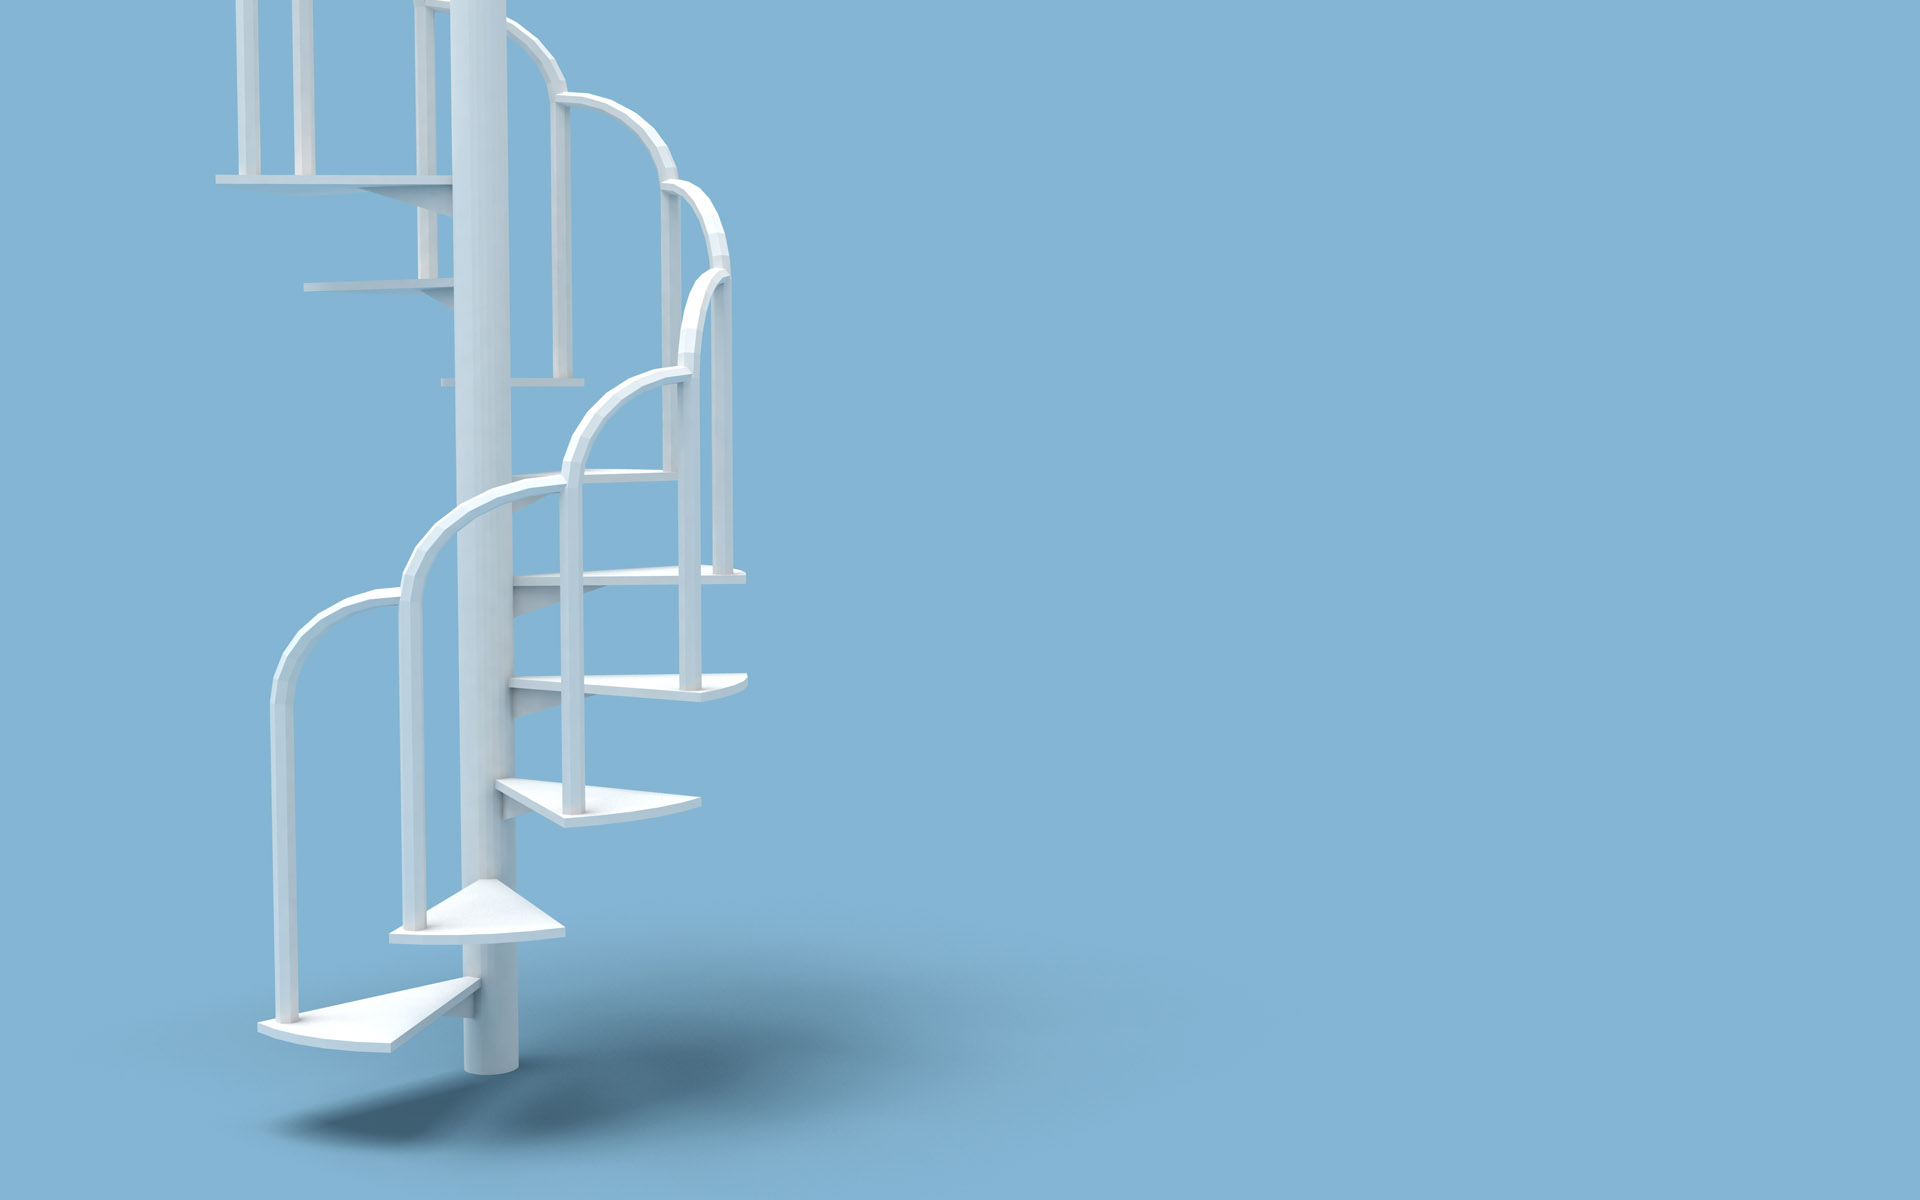 Ladder Wallpaper